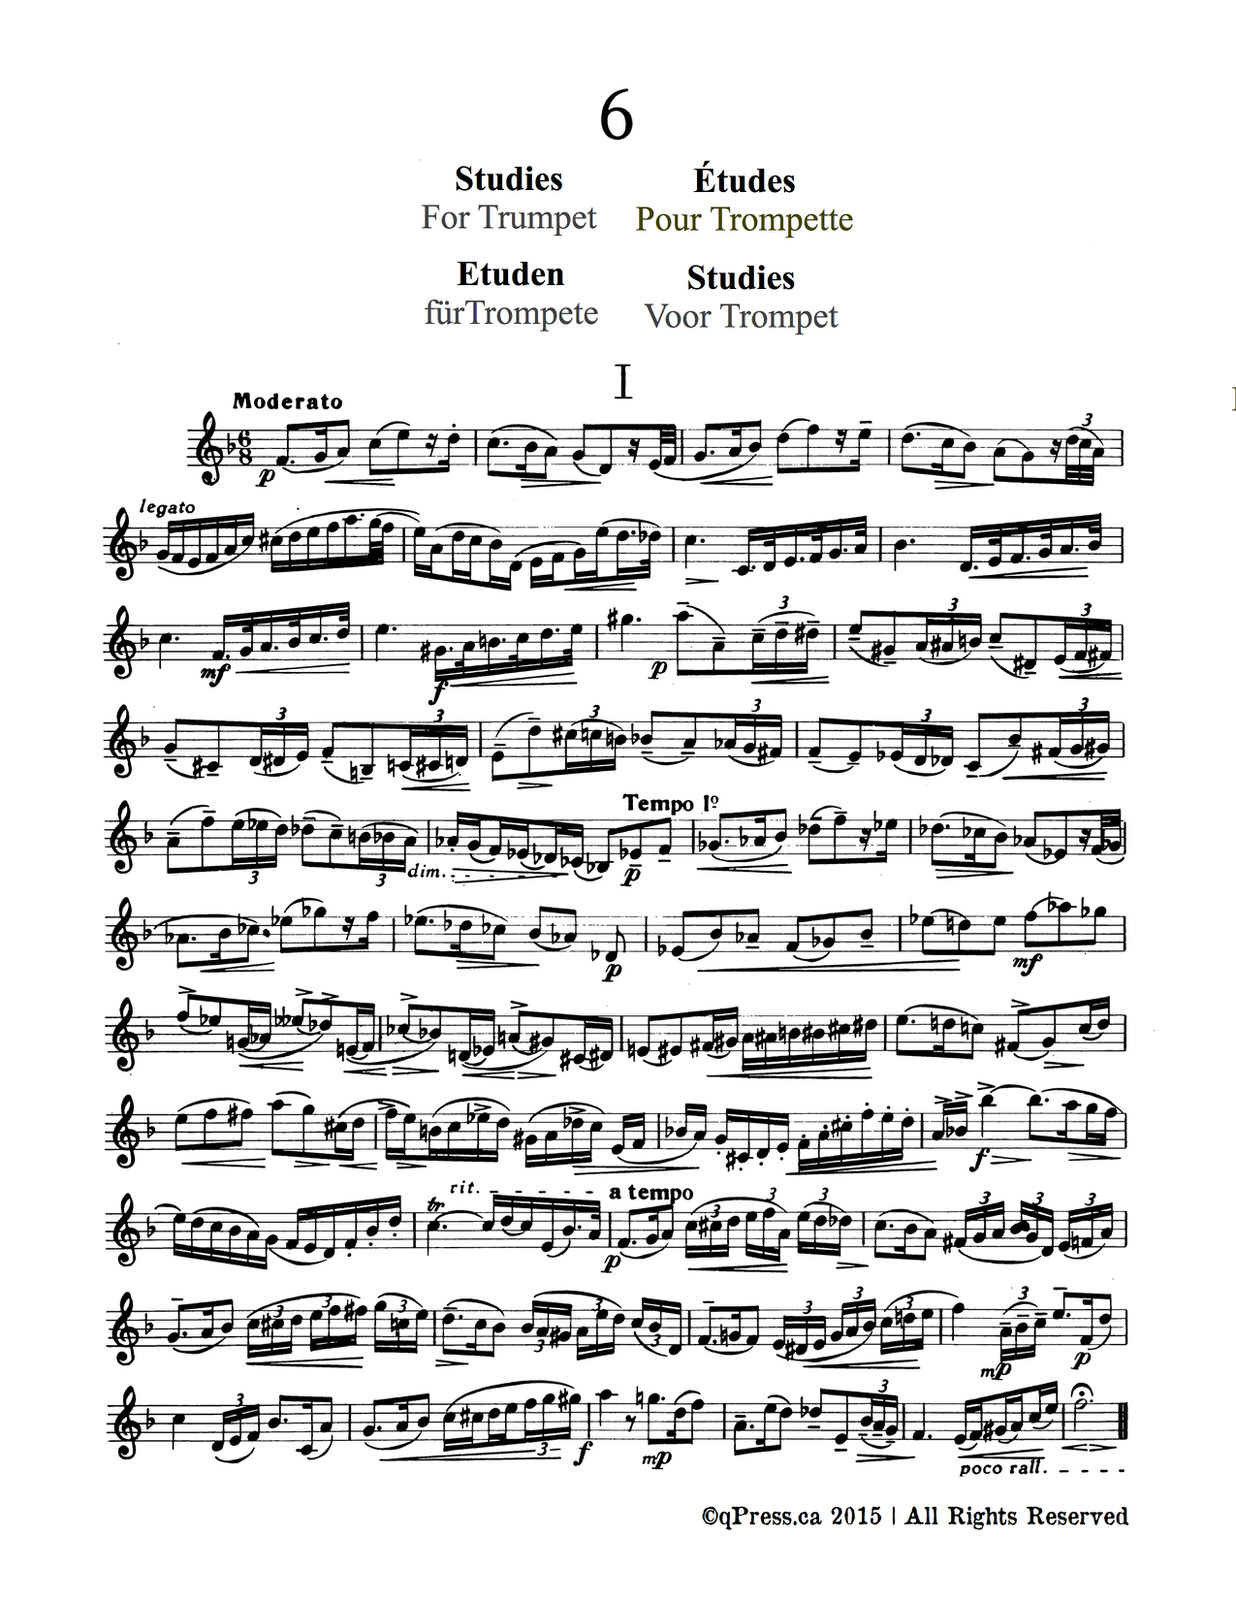 Nuten, 6 Studies for Trumpet 2